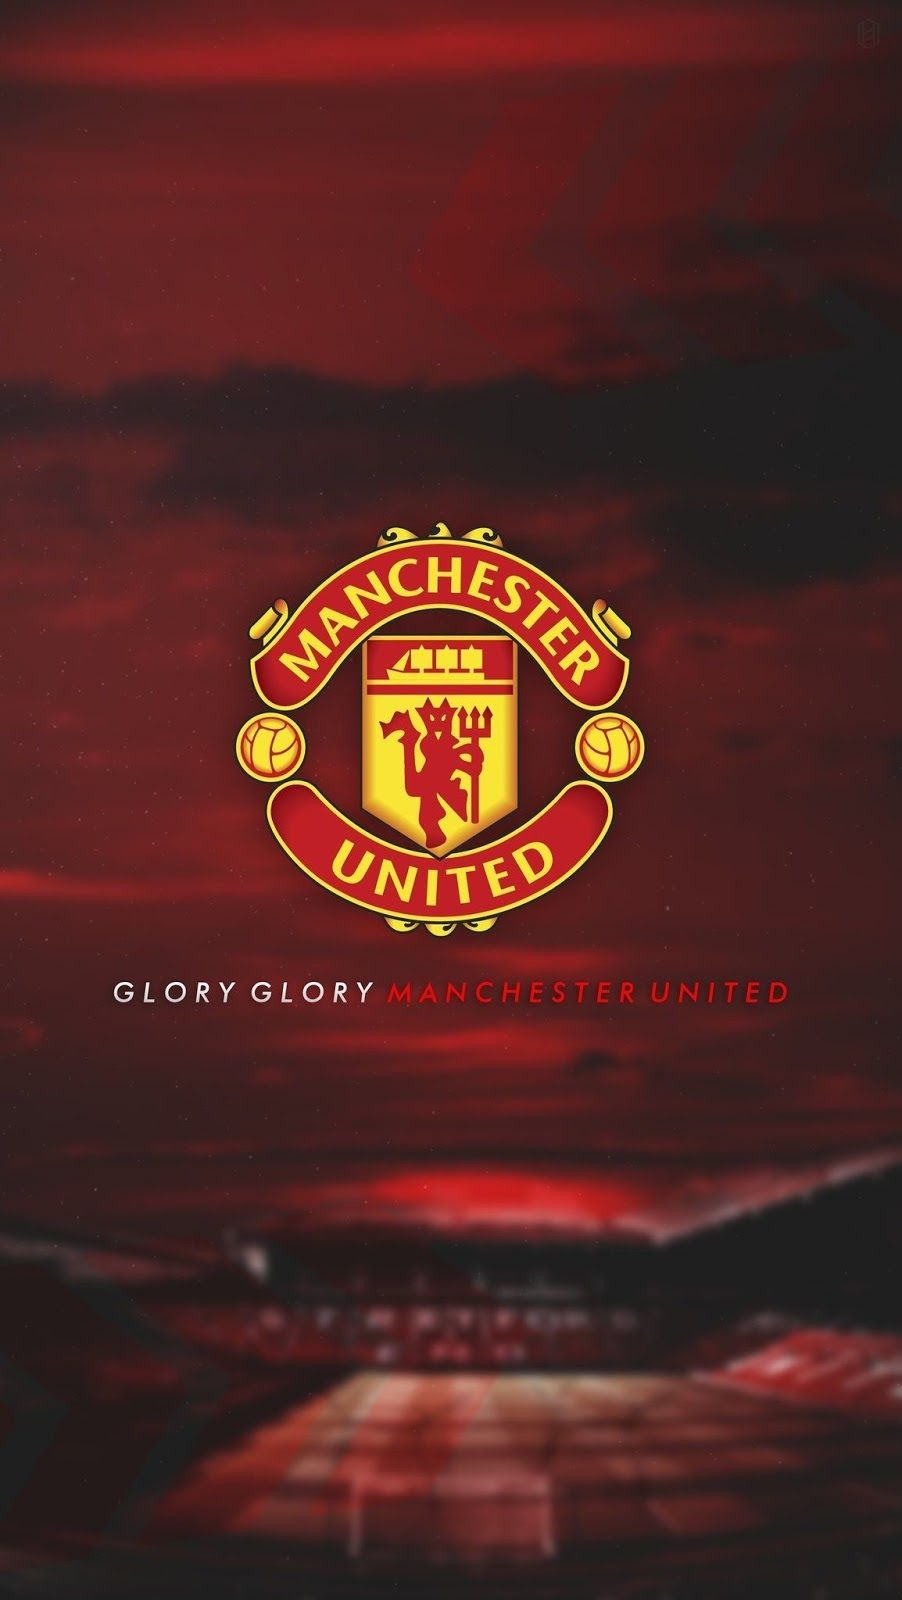 Manchester United Iphone Wallpaper Hd Di 2020 Bola Kaki Sepak Bola Eropa Gambar